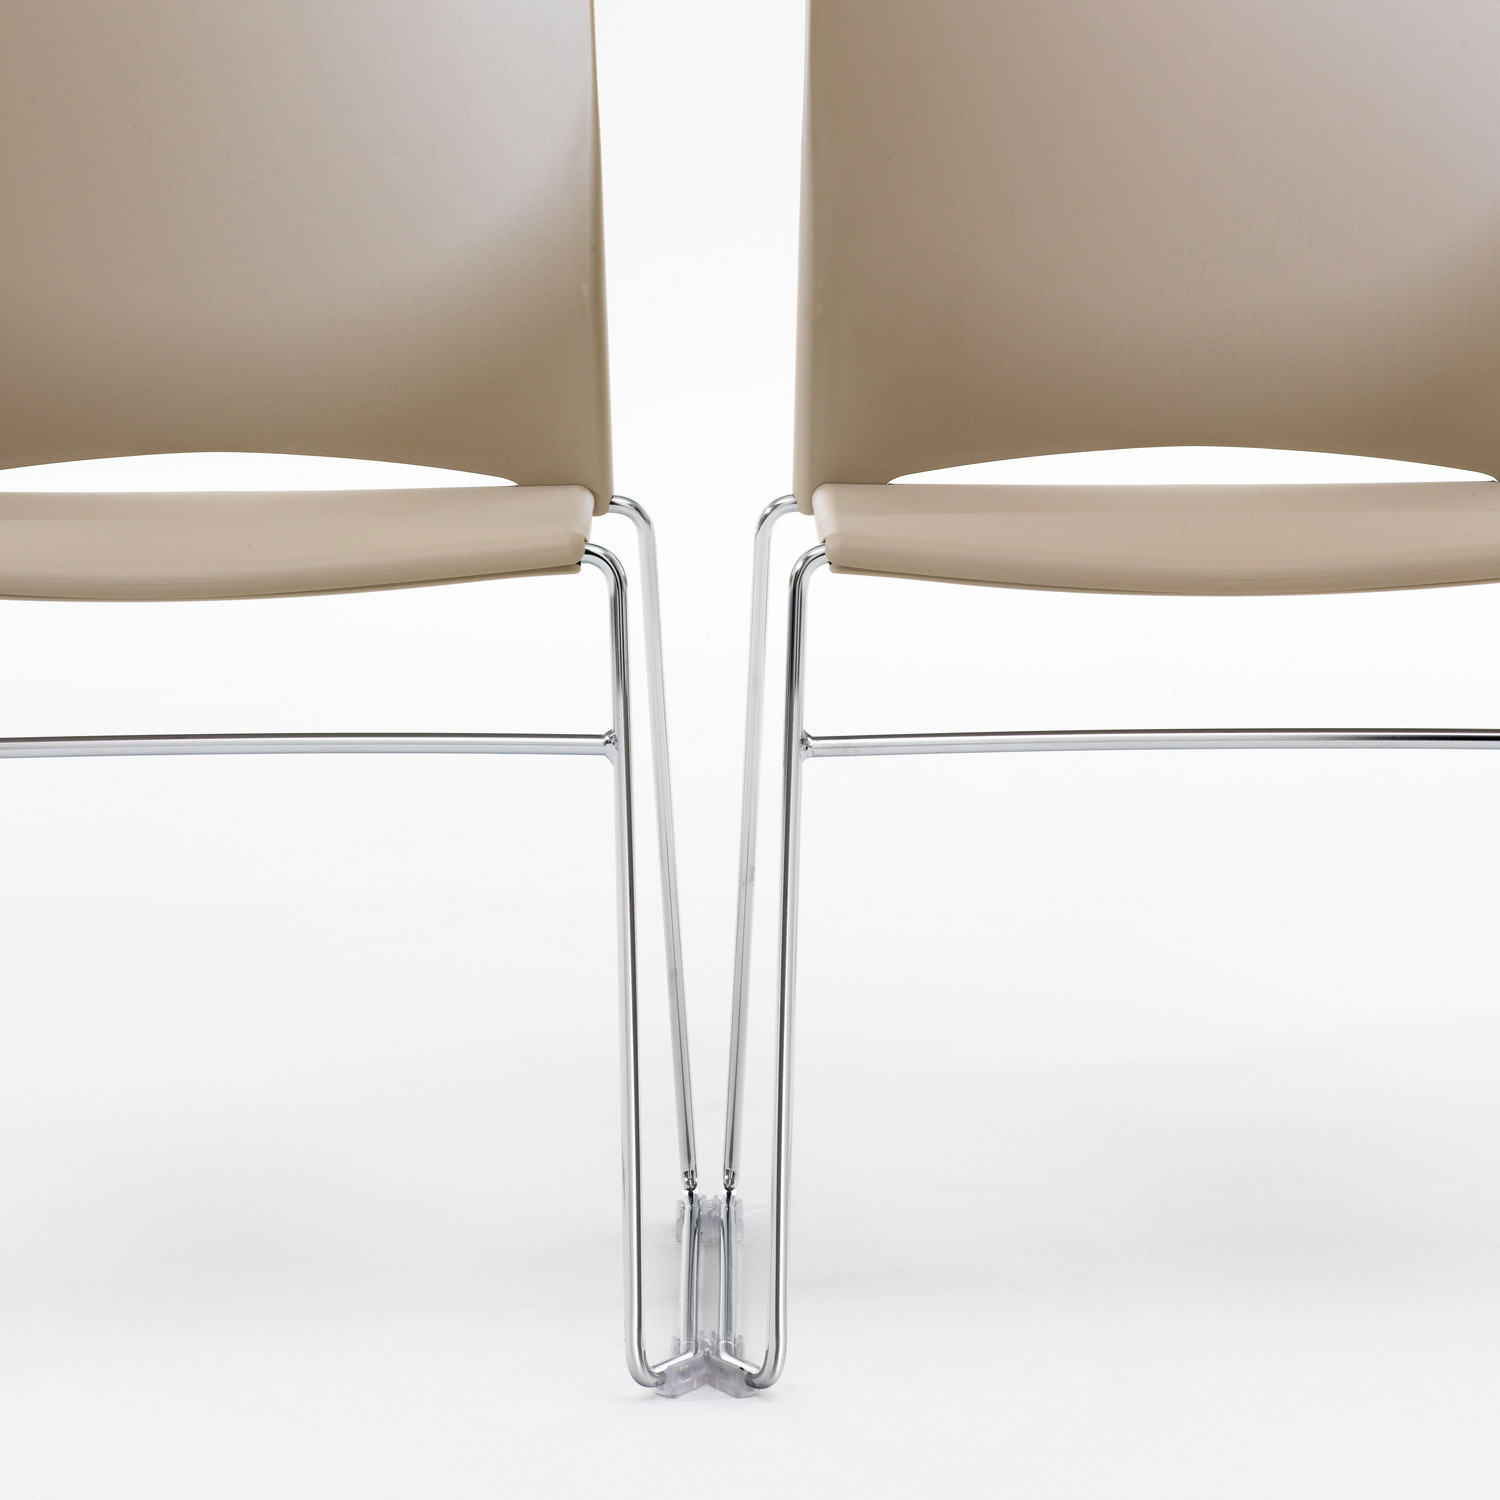 Hip Up Chairs with linking accessory